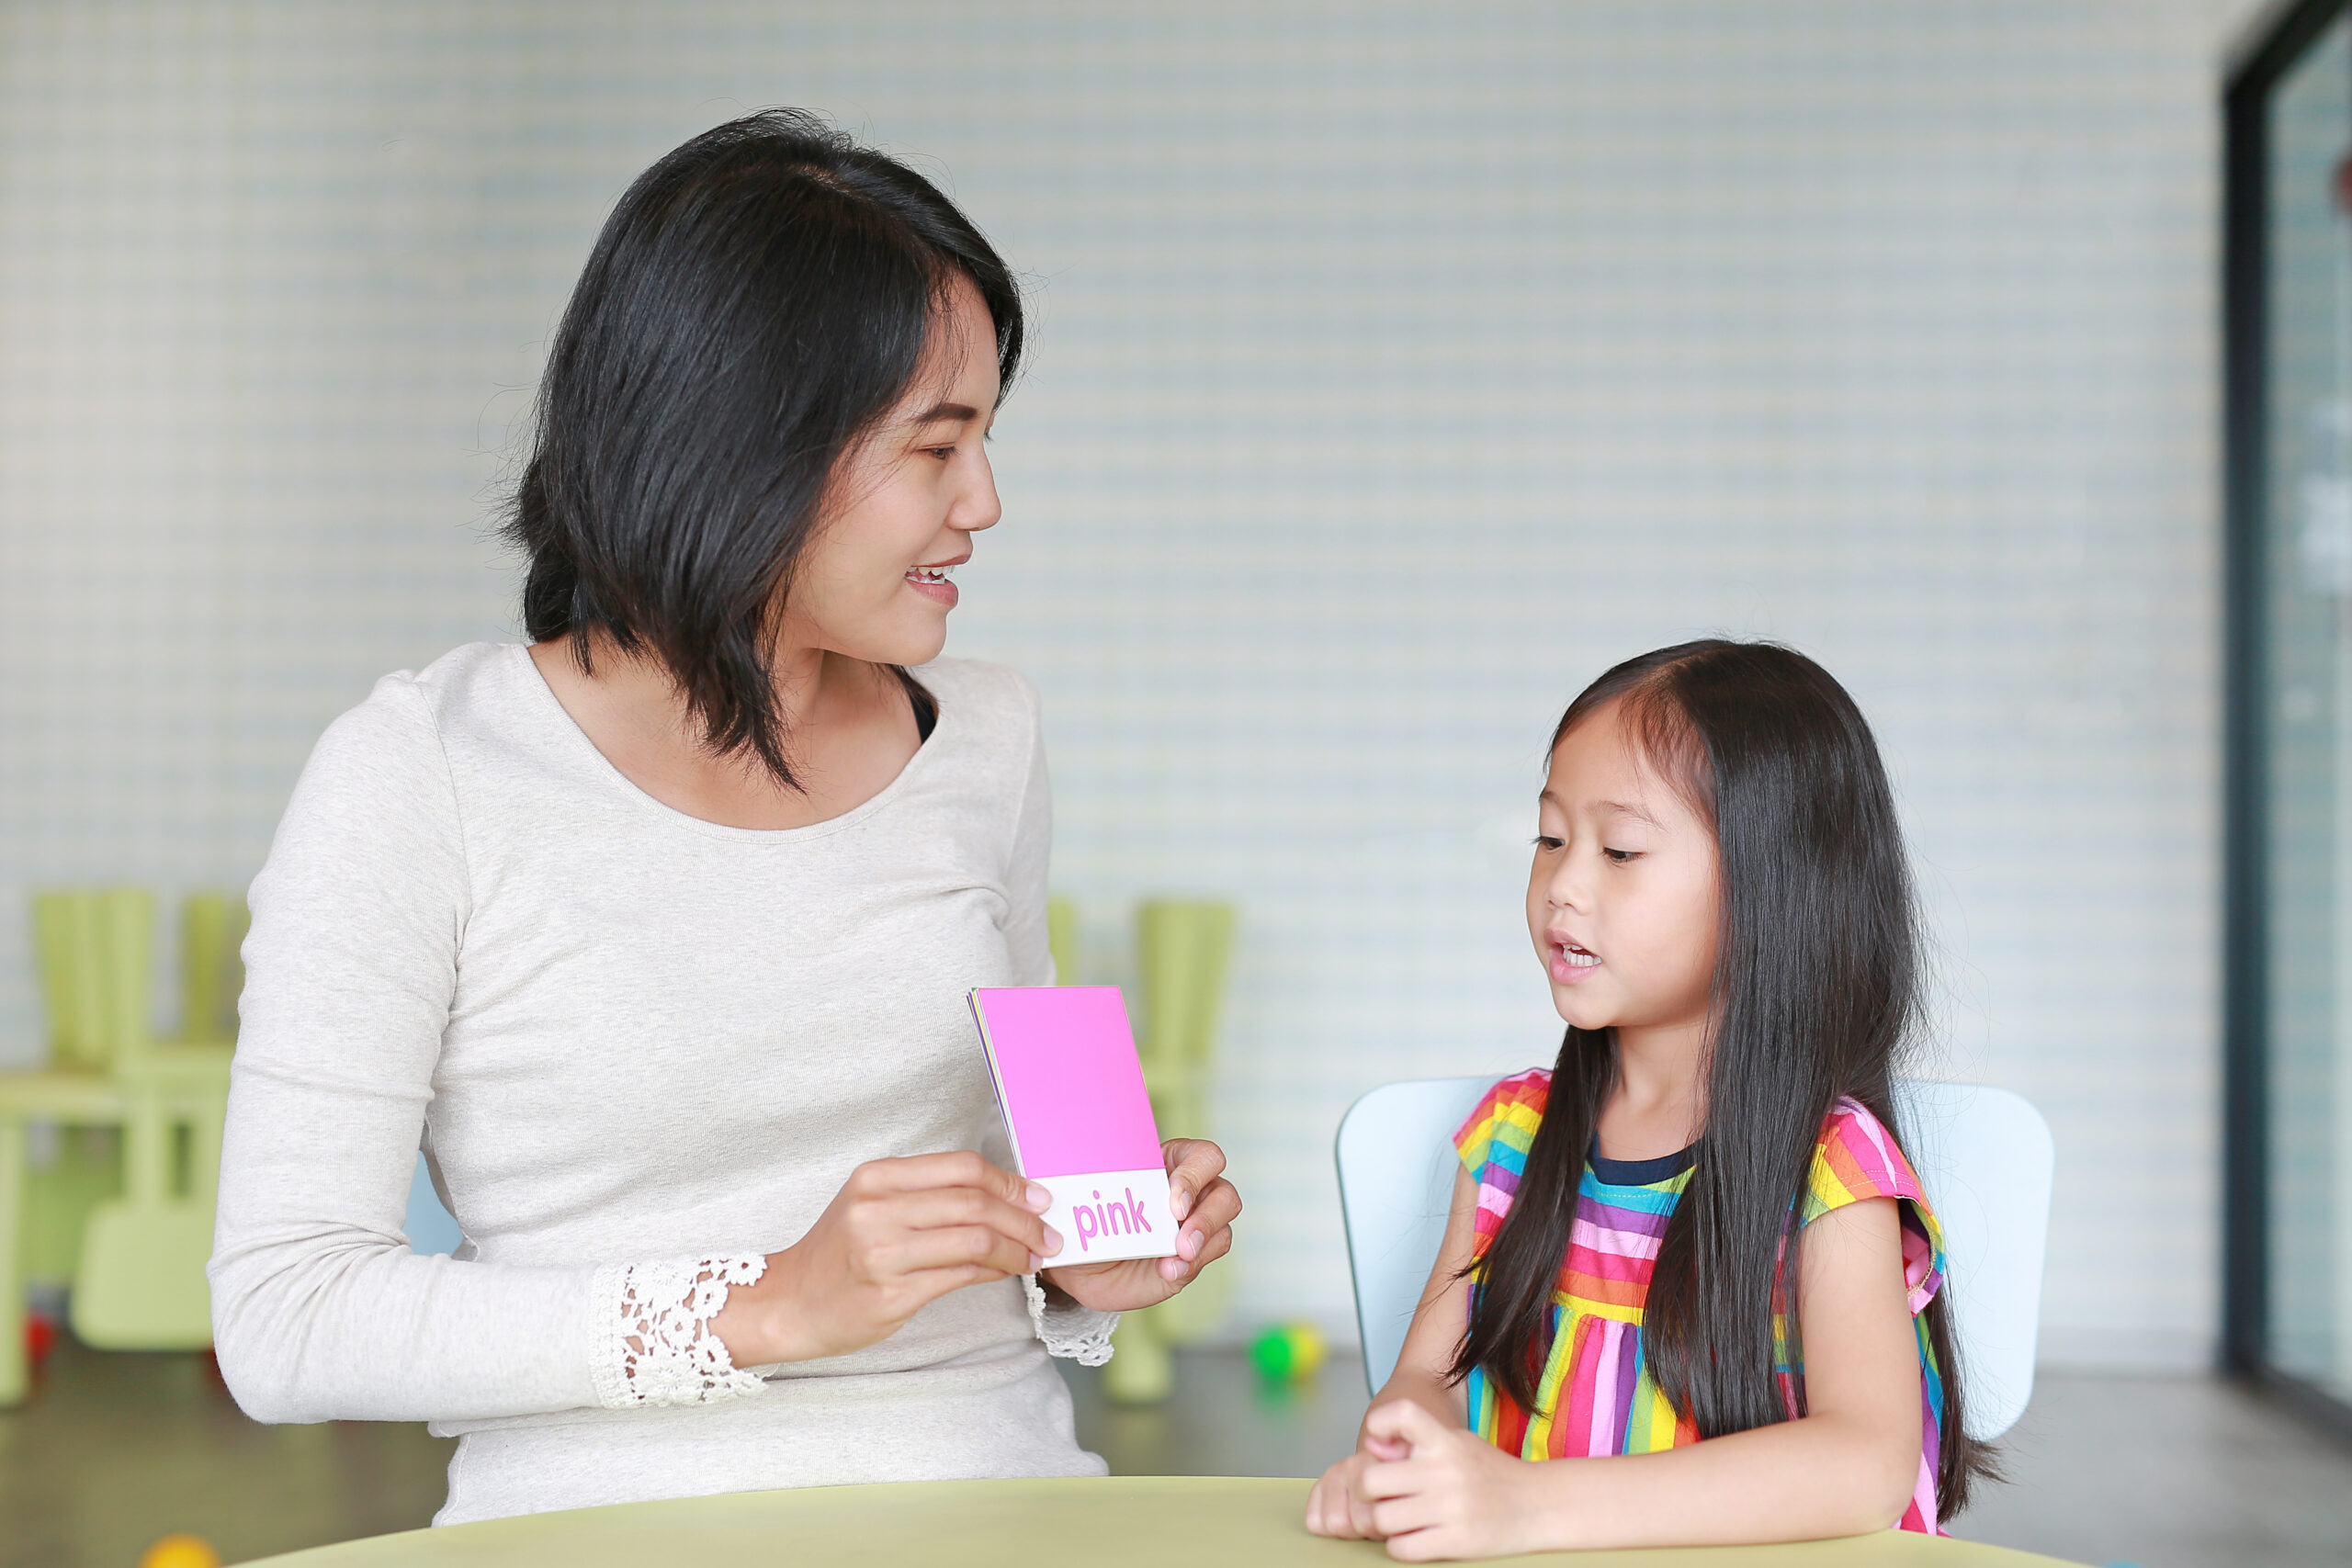 Asian mother and child girl playing flash card for Right Brain Development at the playroom. Kid learning concept.